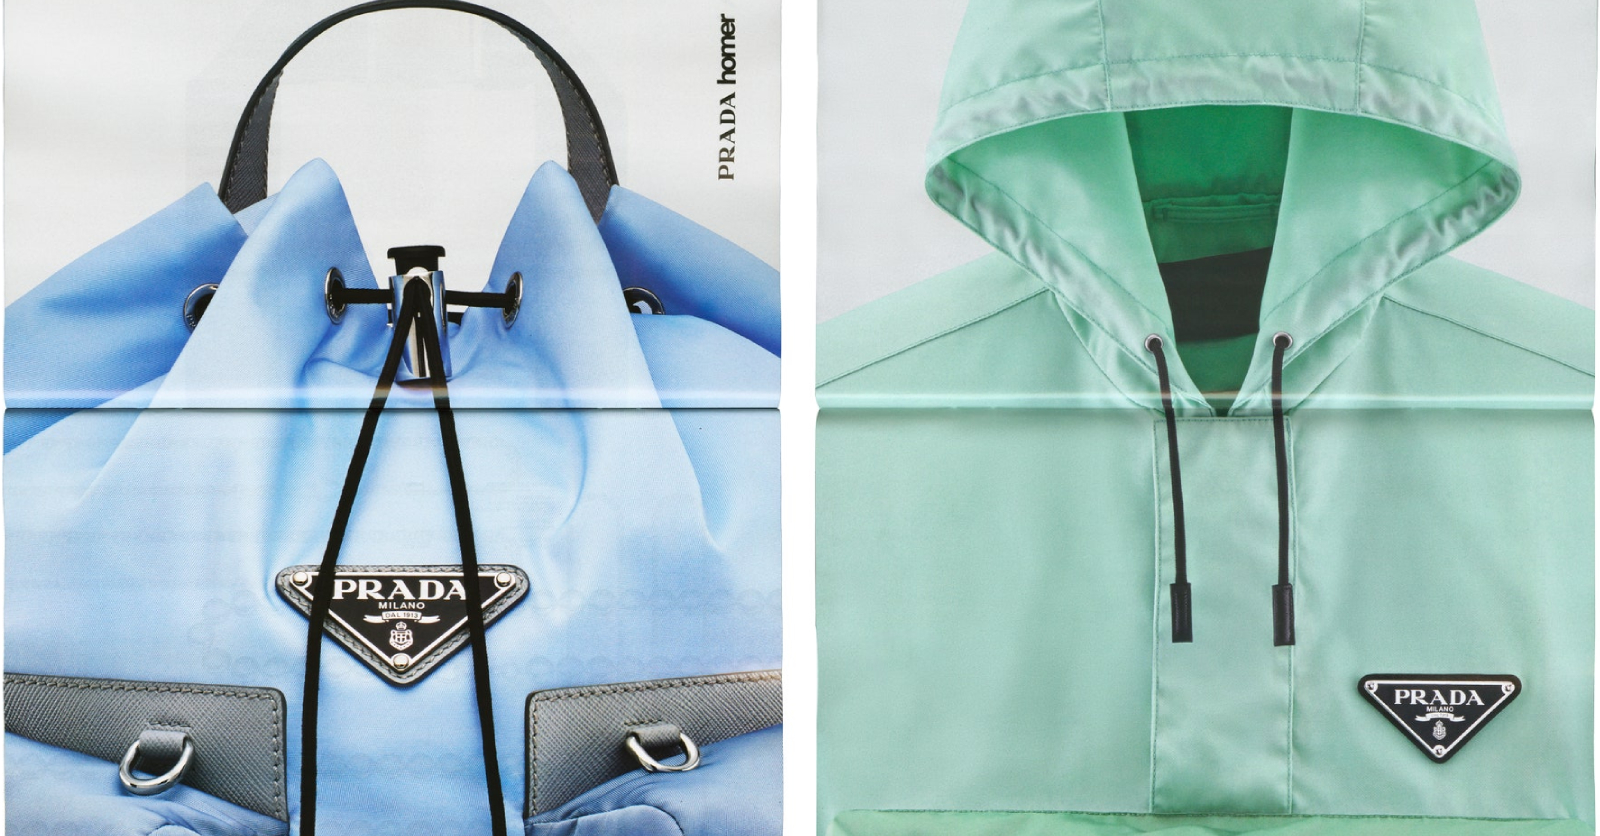 Frank Ocean is designing Prada bags and jackets — here's your first look